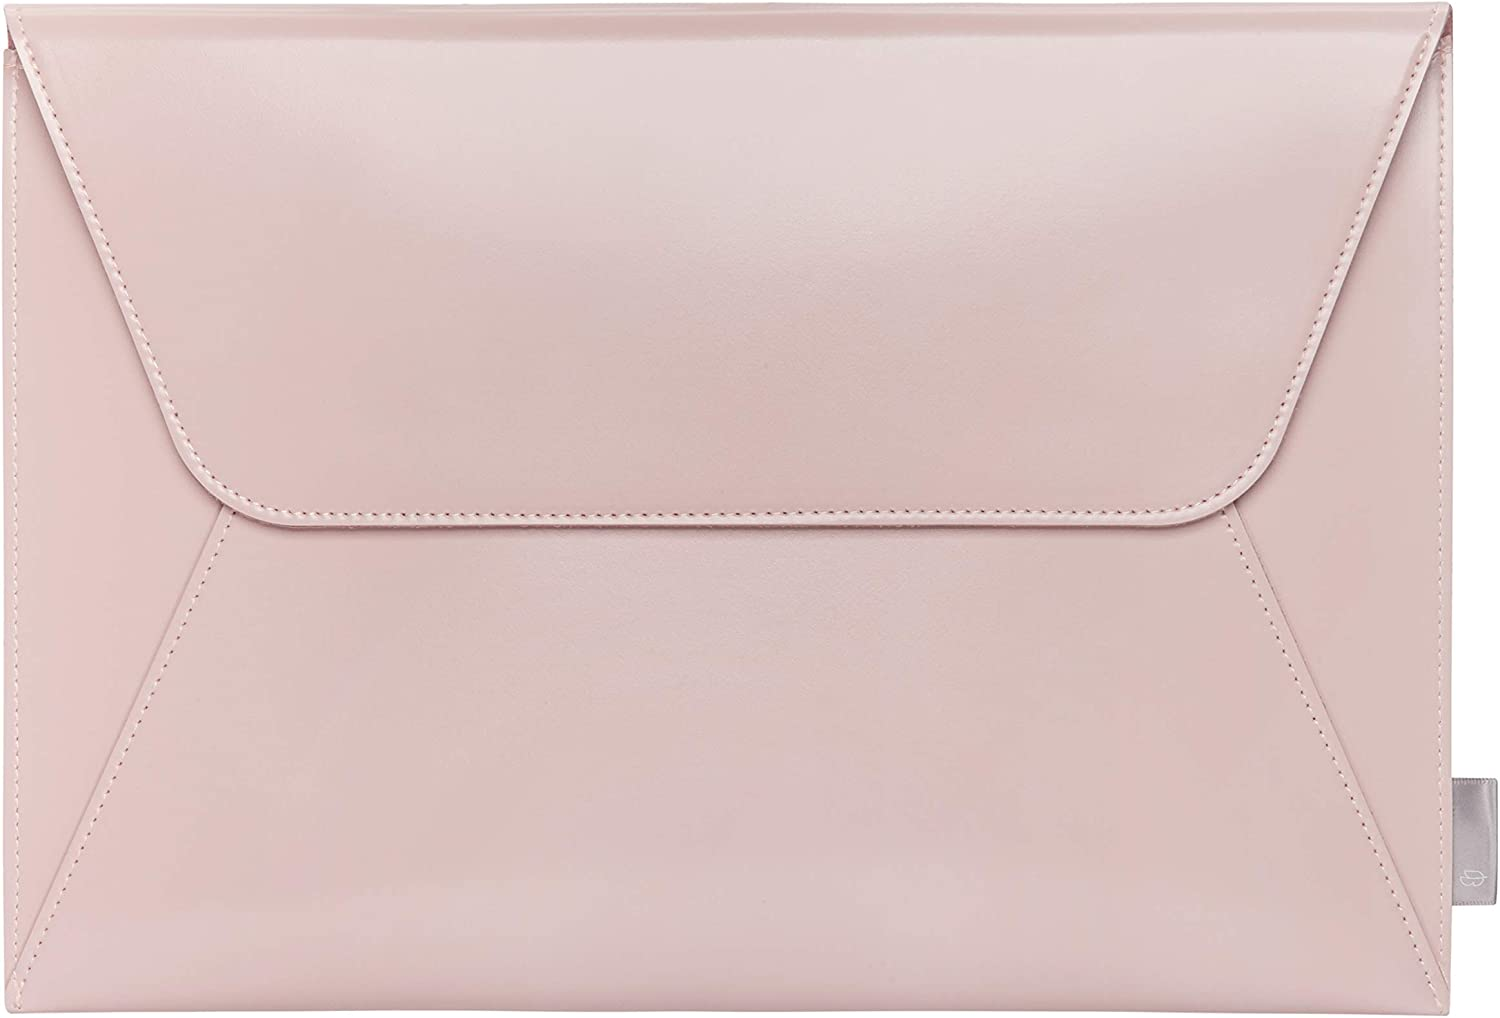 Comfyable Leather Tablet Sleeve for iPad Pro 12.9 inch 2020 & Smart/Magic Keyboard with Pencil Holder - PVC Leather Envelope Sleeve Tablet Case for iPad, Pink